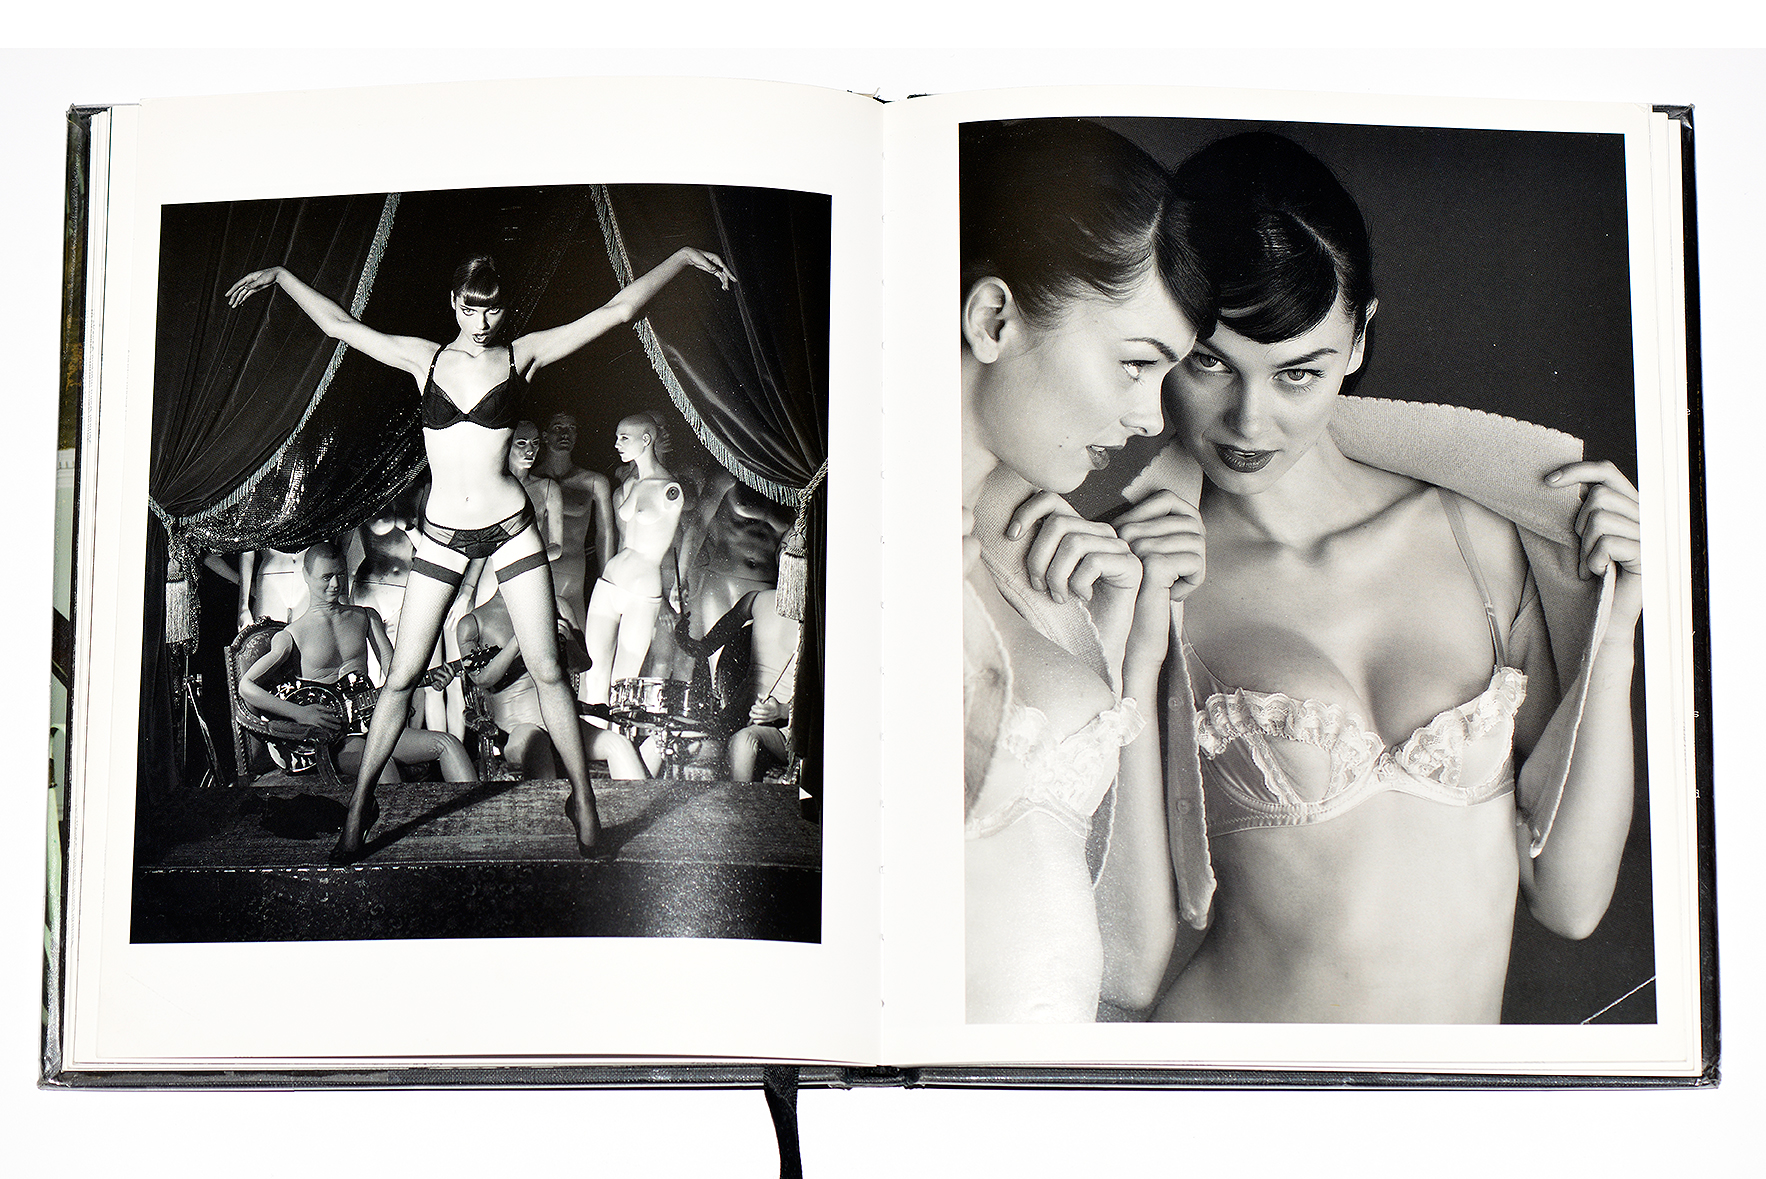 Agent-provocateur-the-four-dreams-of-miss-x-lingerie-la-femme-books-for-lingerie-lovers-christmas-gift-guide-01